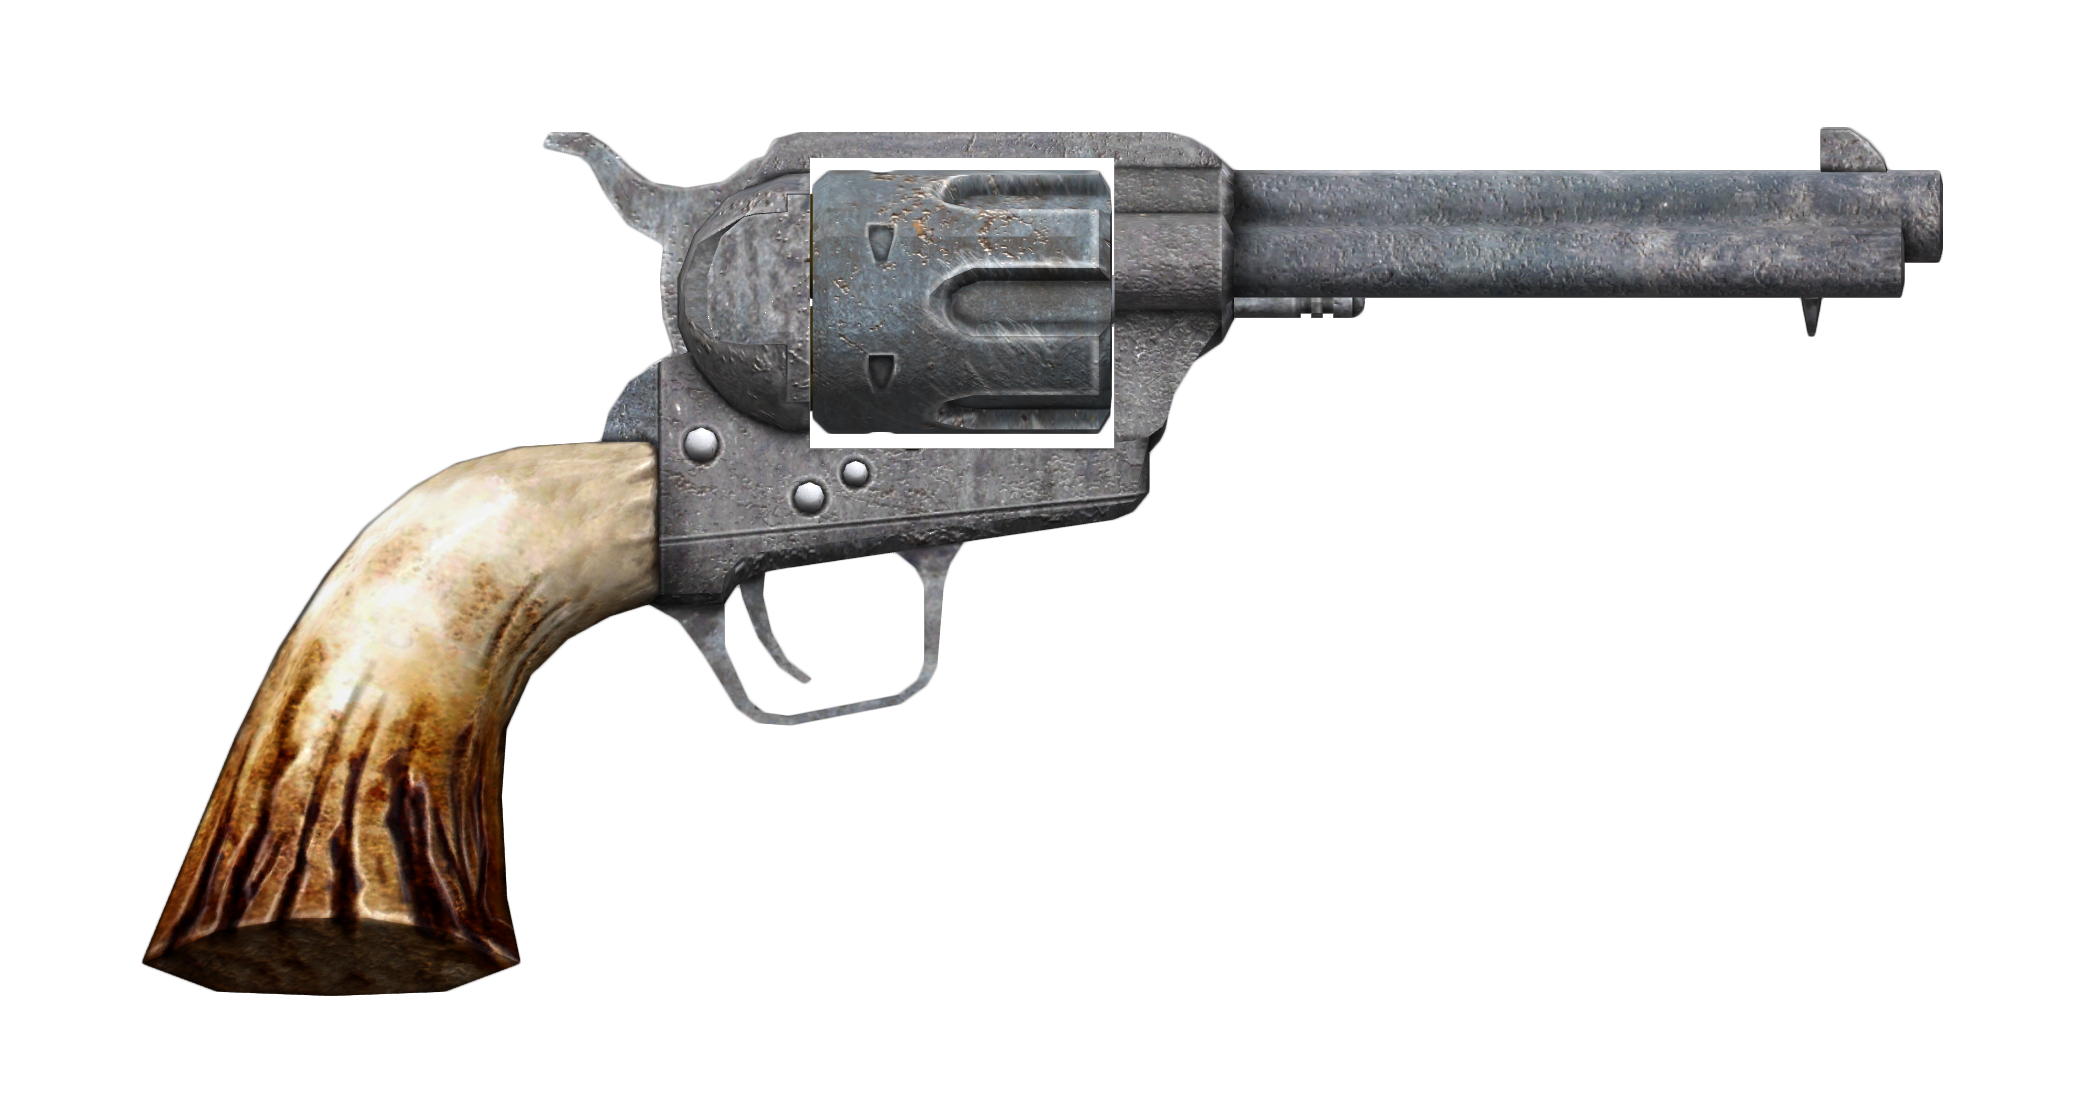 357 magnum revolver - The Fallout wiki - Fallout: New Vegas and more